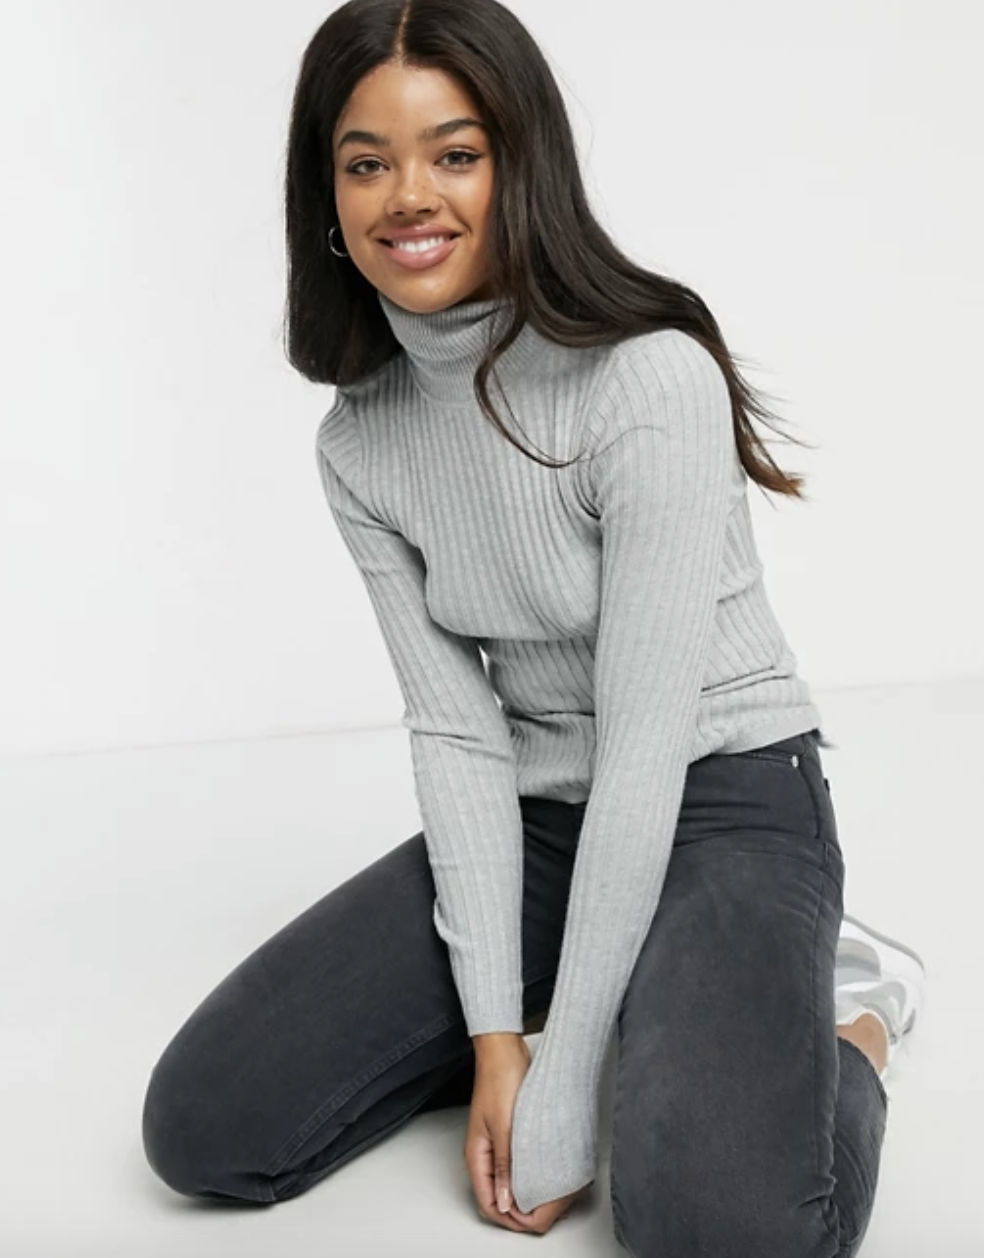 model wearing the gray sleeved top